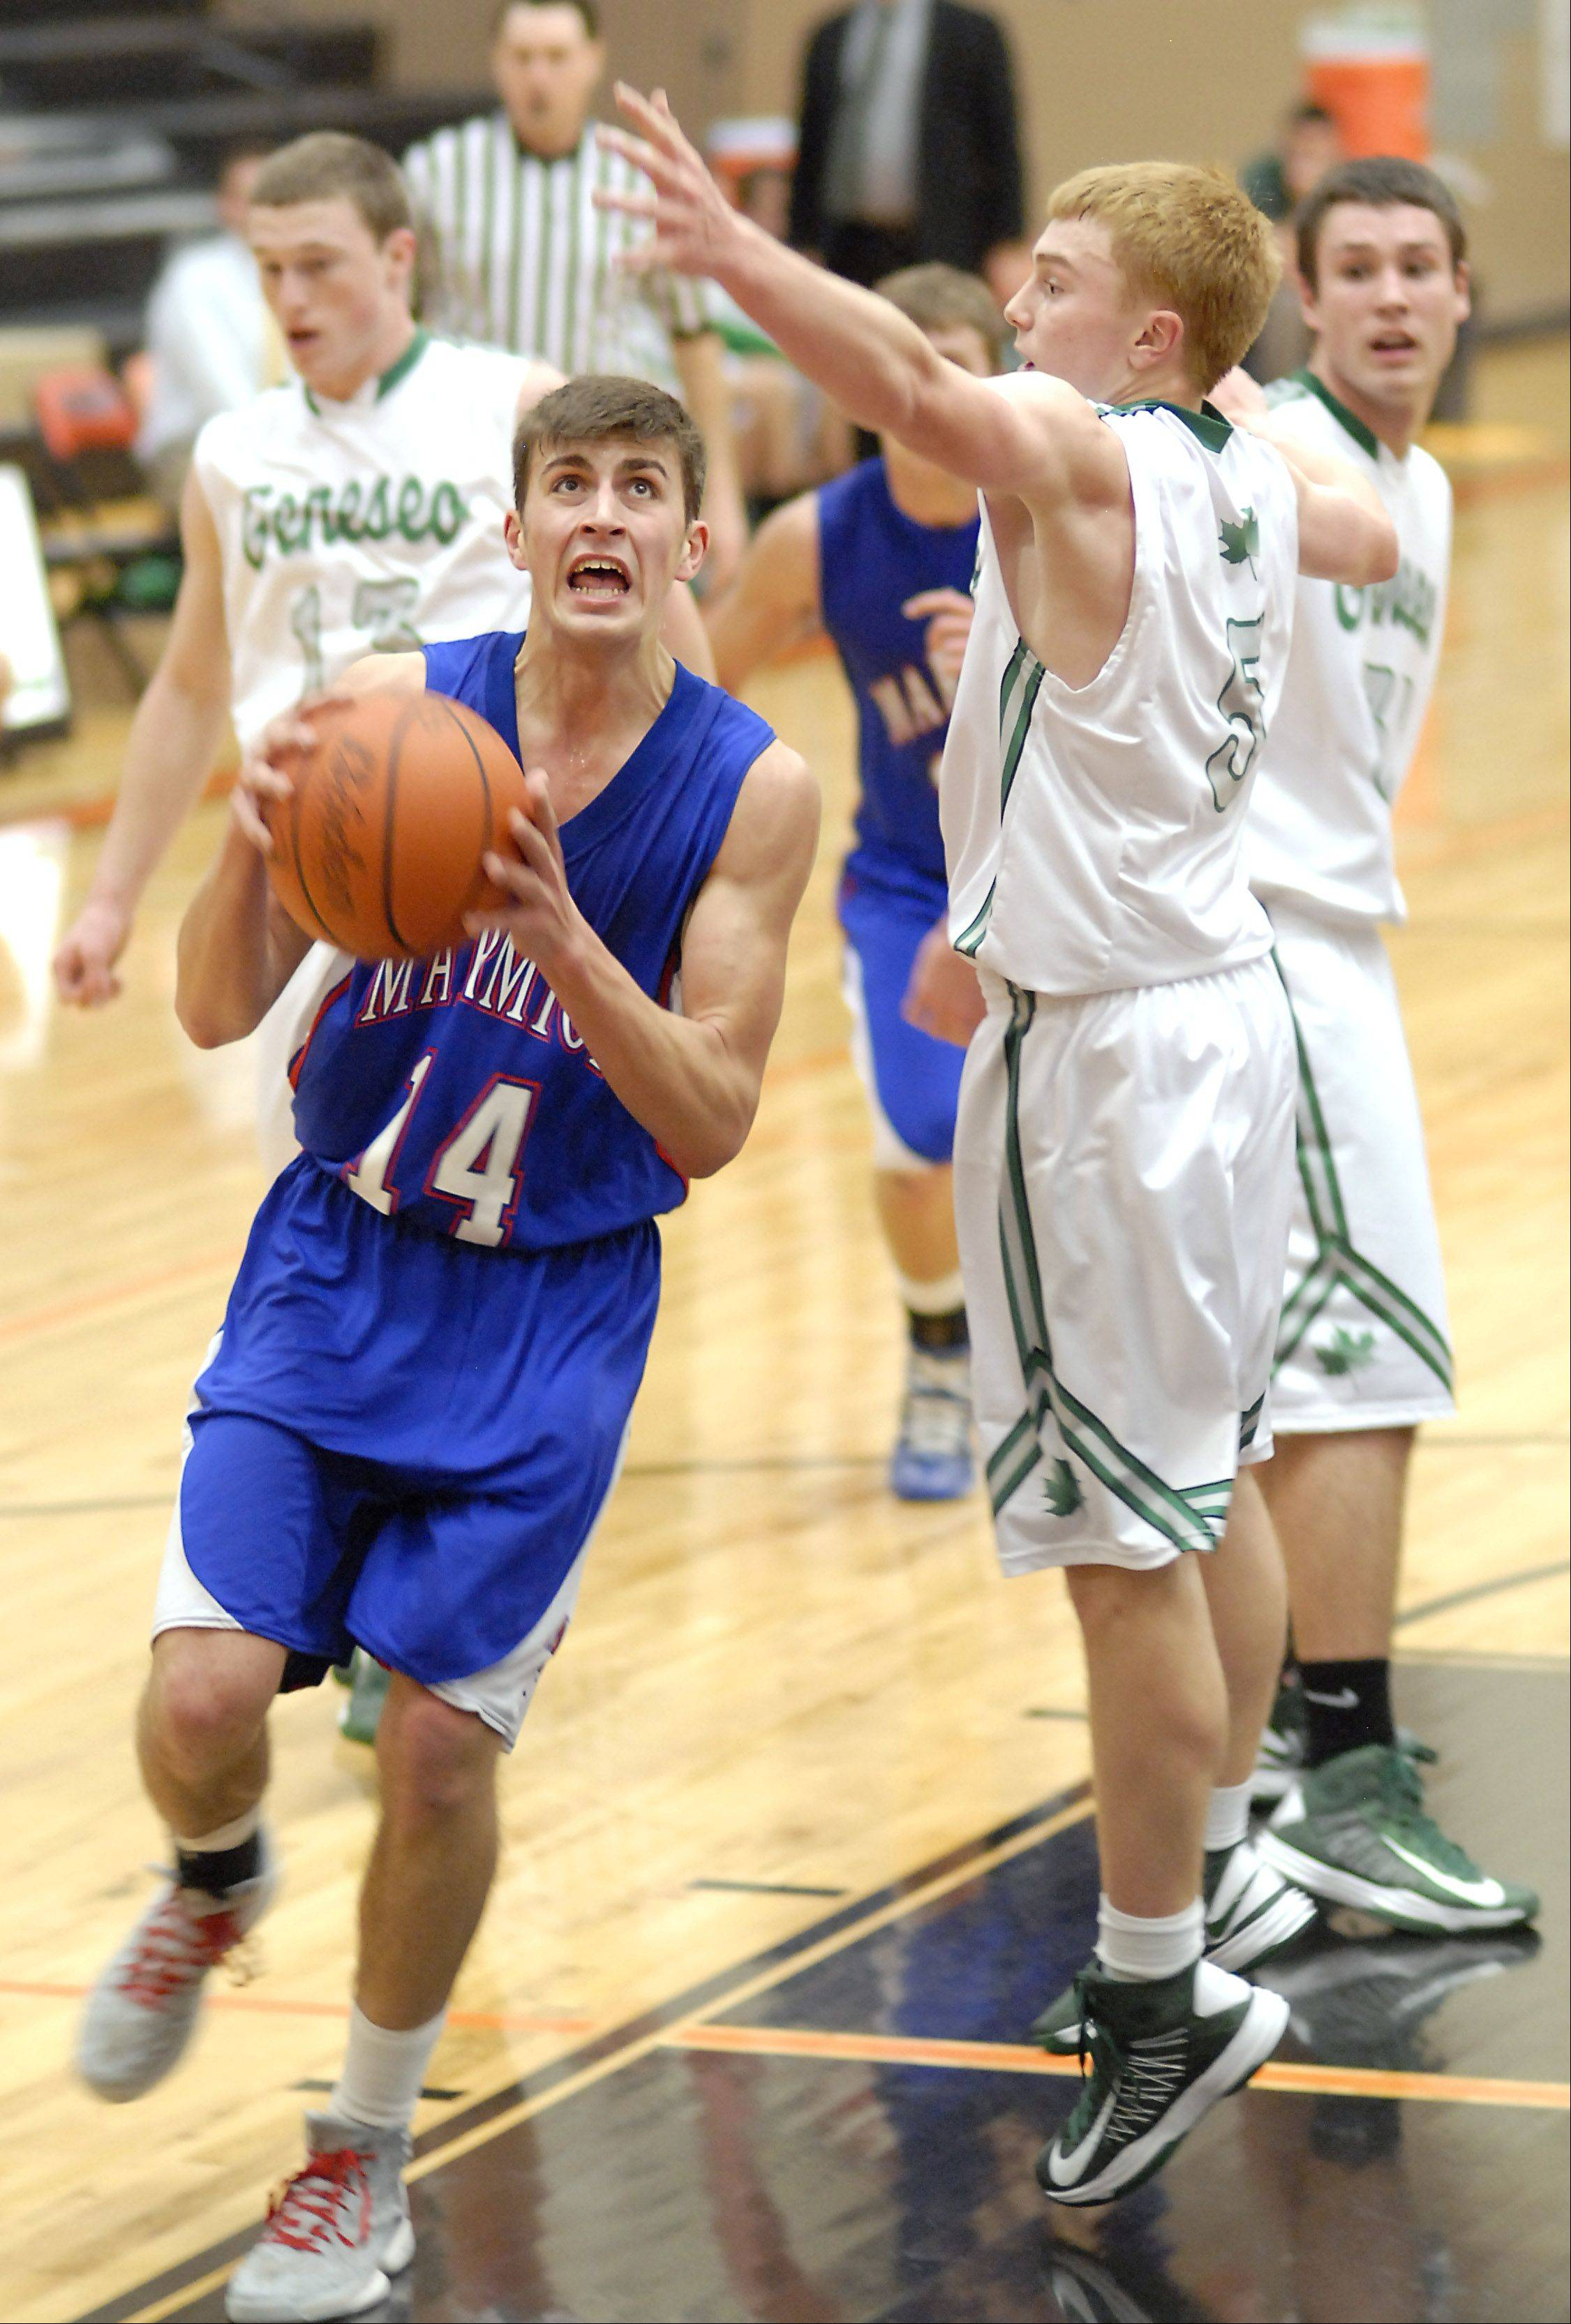 Marmion's Alex Theisen shoots past a block by Geneseo's Jordan Starkey in the fourth quarter of the DeKalb tournament on Saturday, December 22.